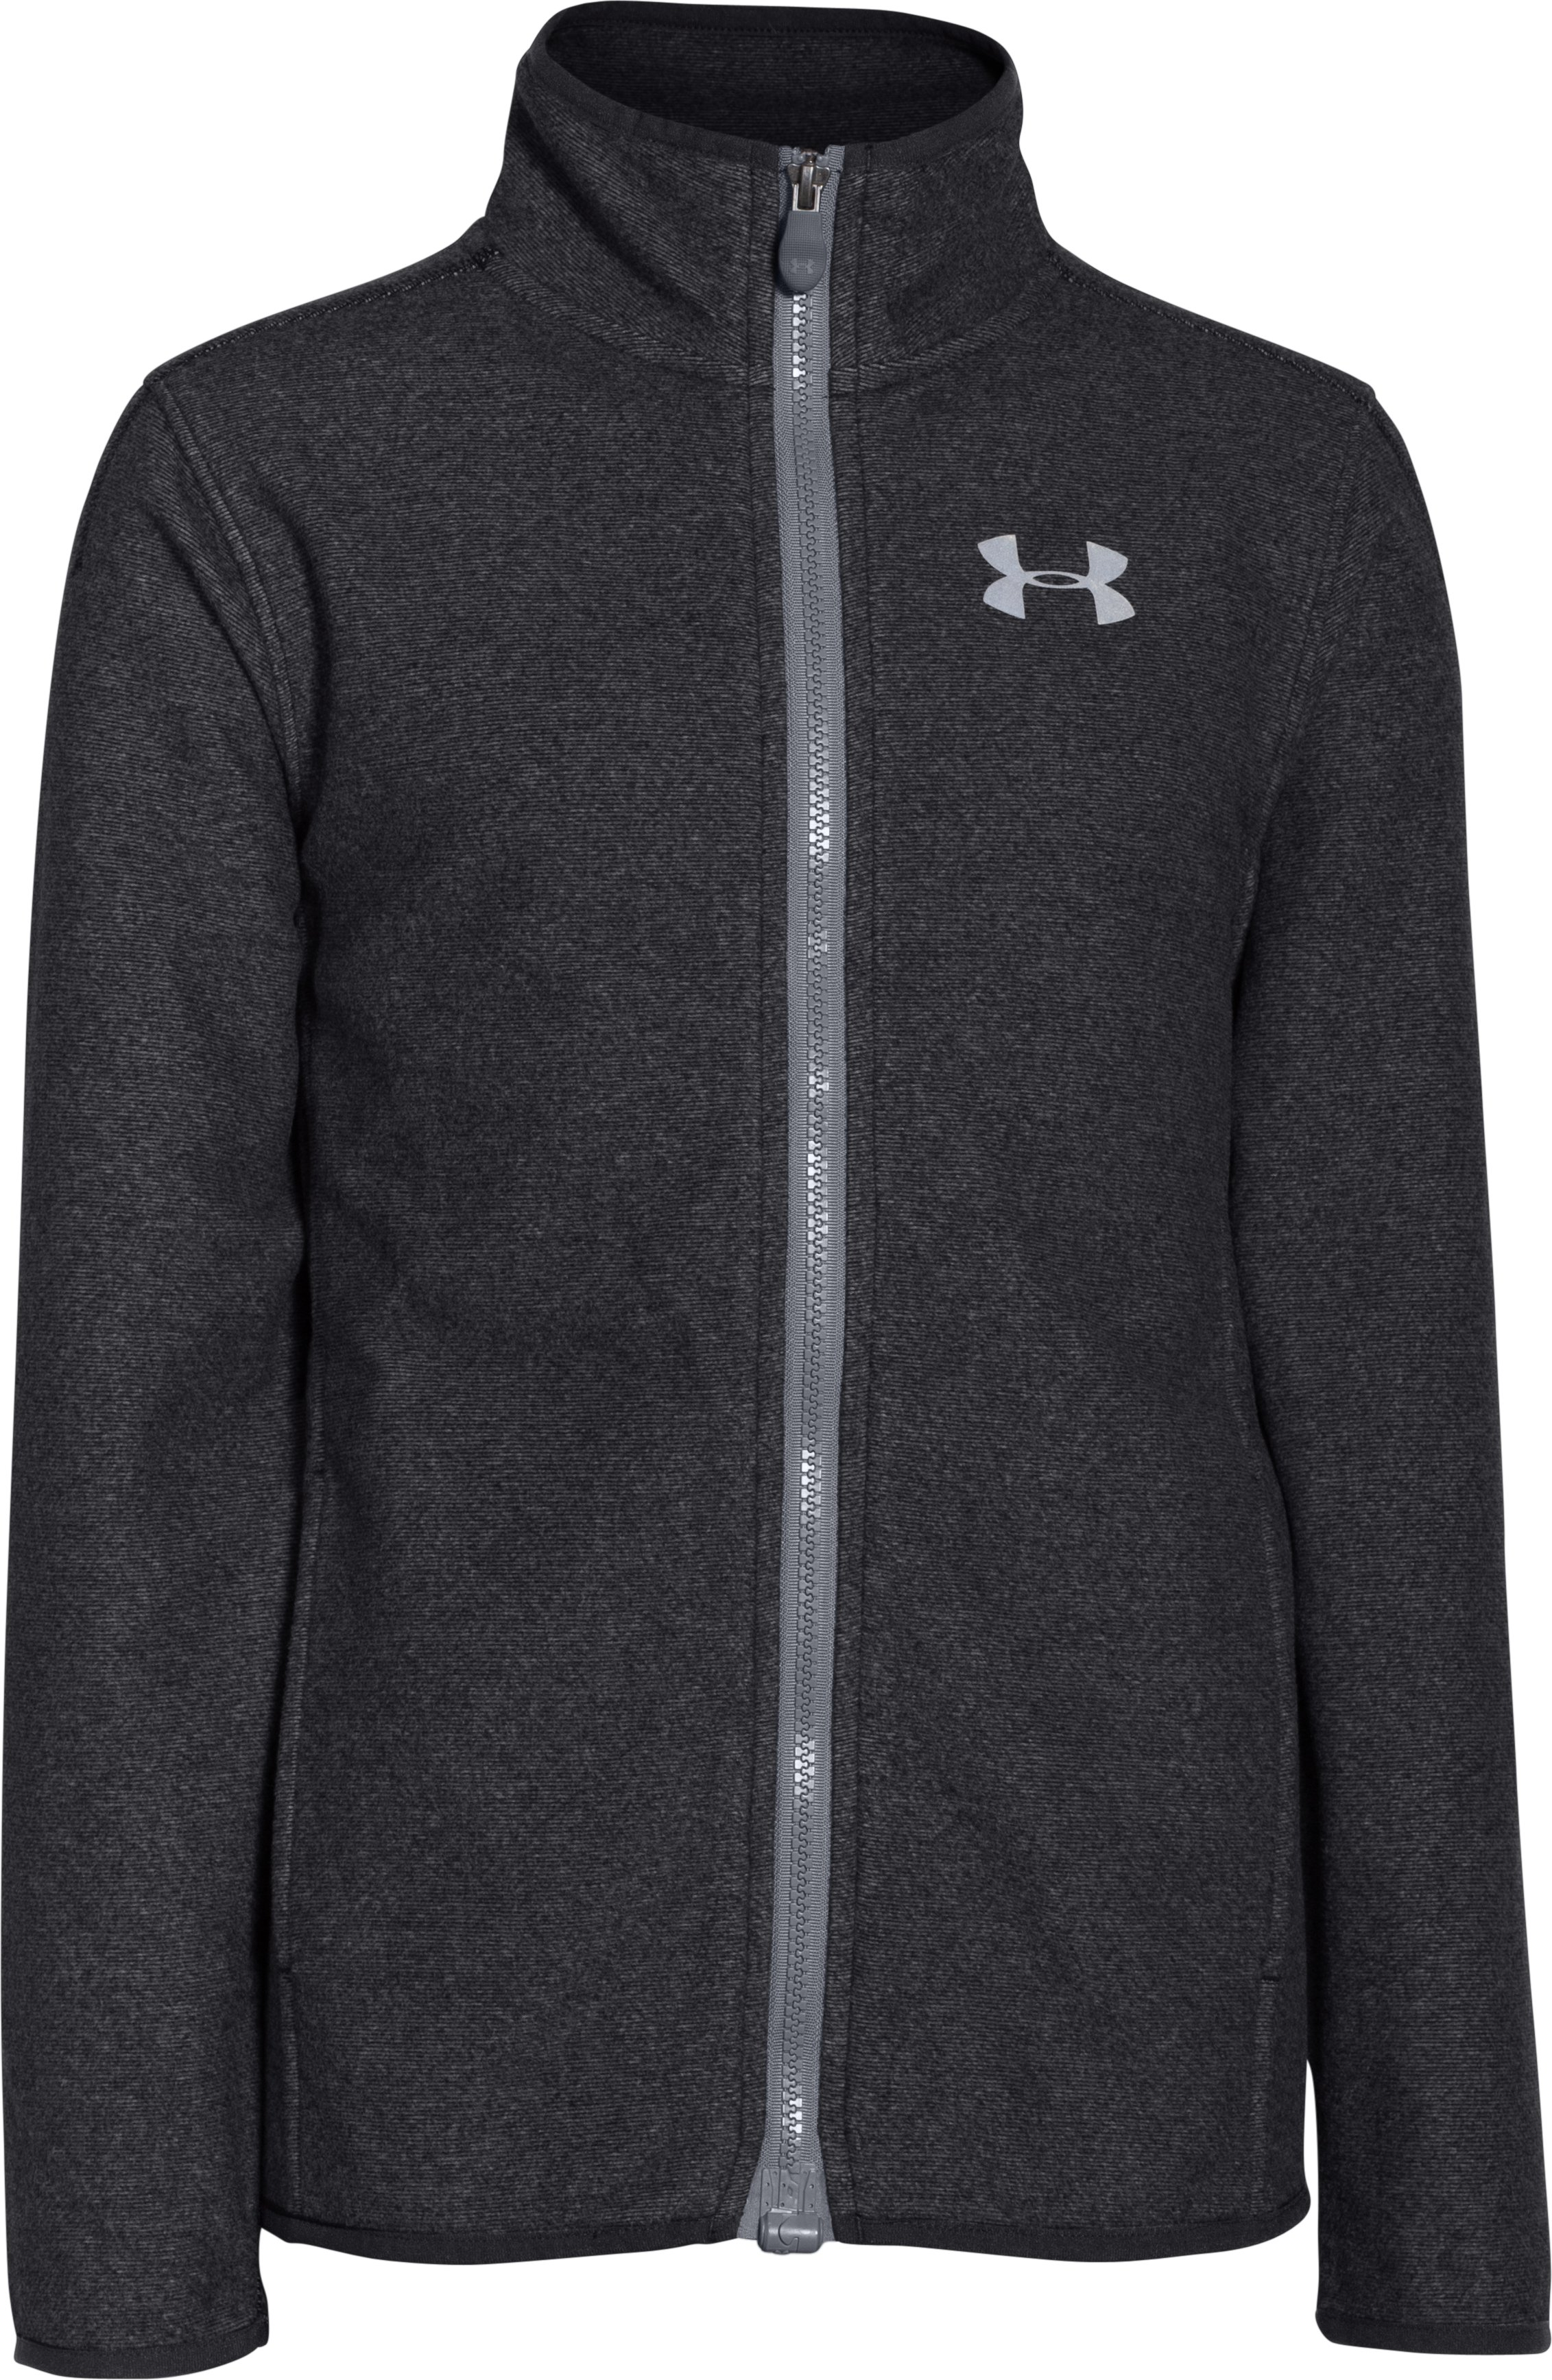 Boys' UA ColdGear® Infrared Performance Fleece Jacket, Black , undefined